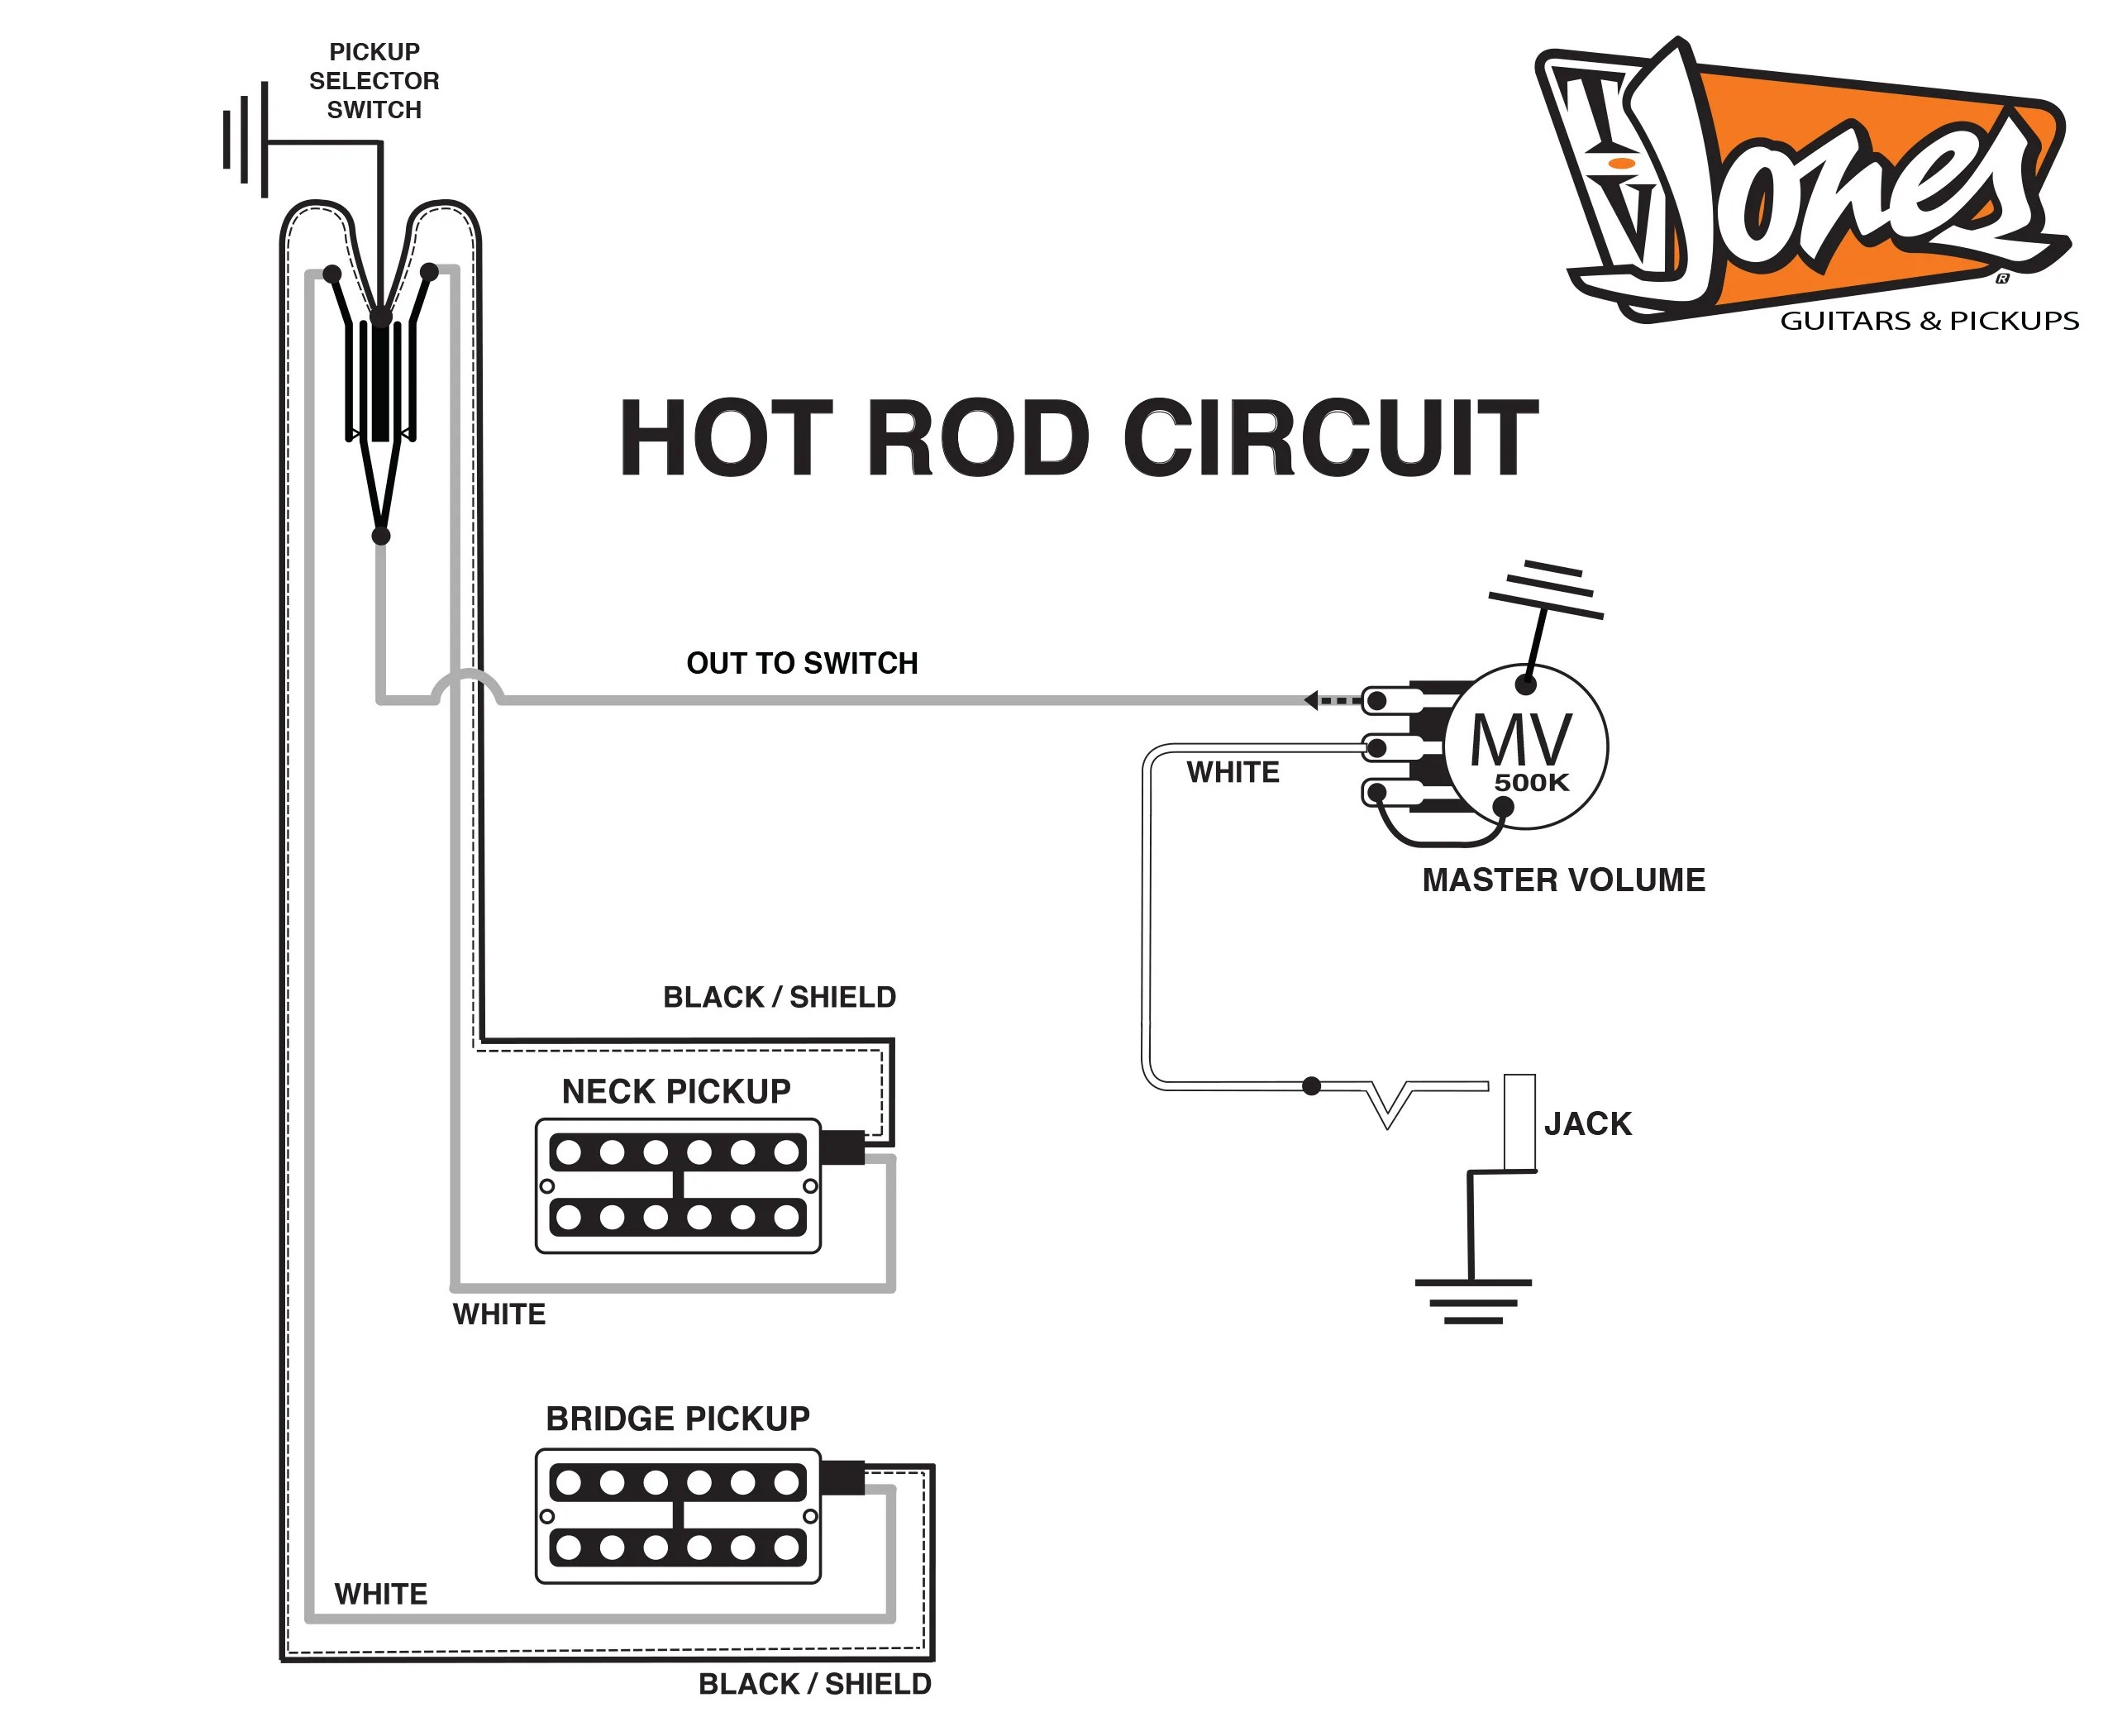 Mud switch broke; convert to hot rod wiring? : The